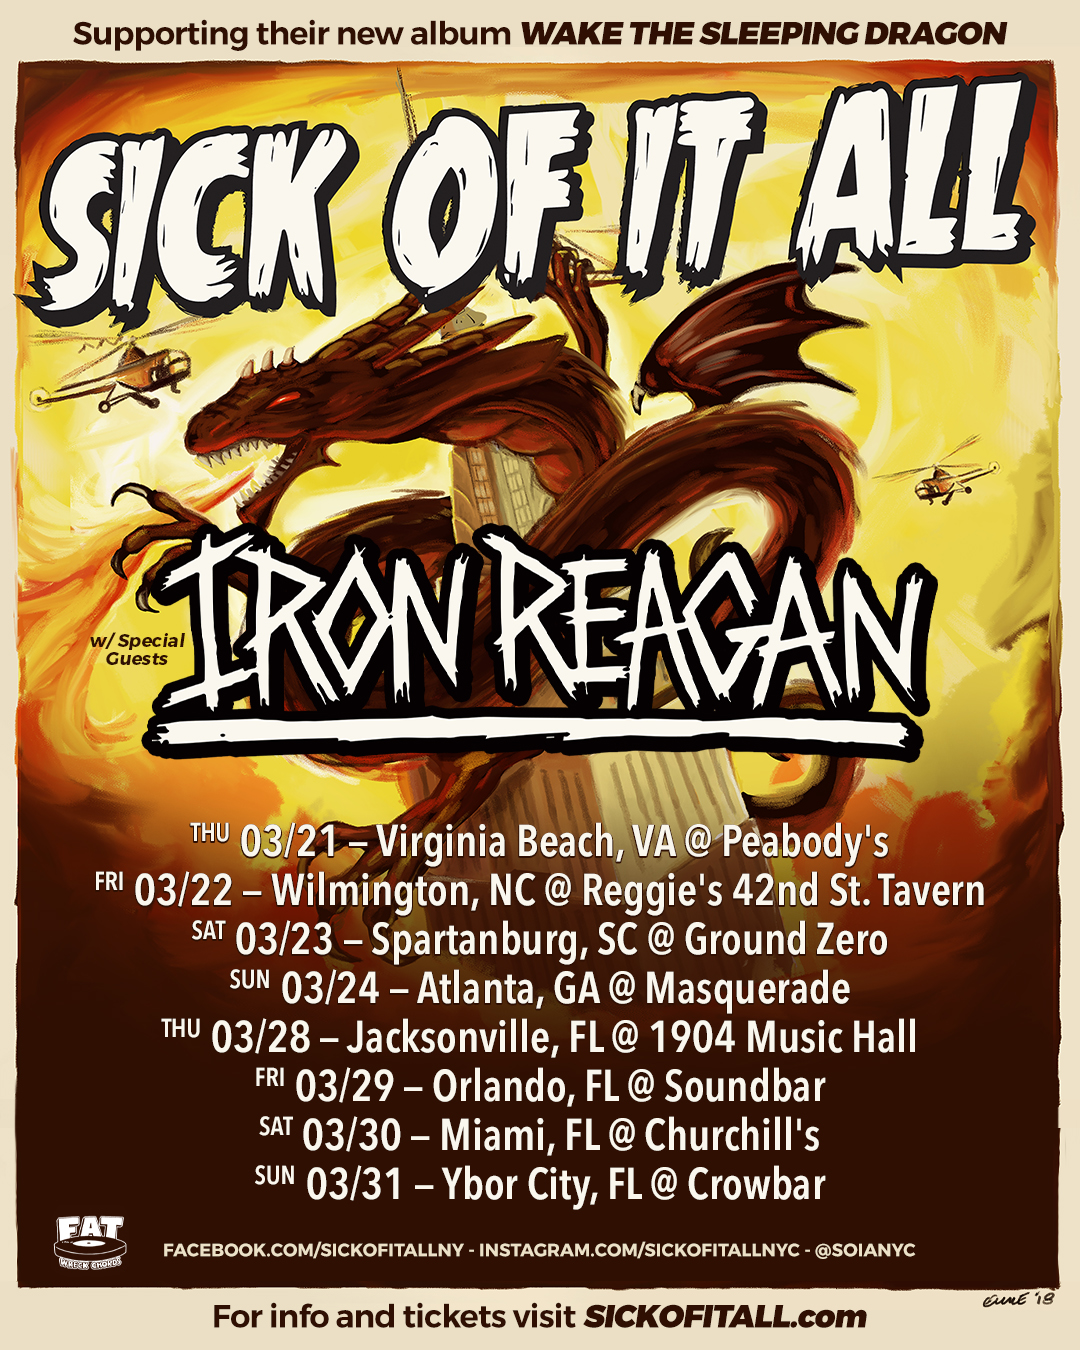 Tour with Iron Reagan in March announced